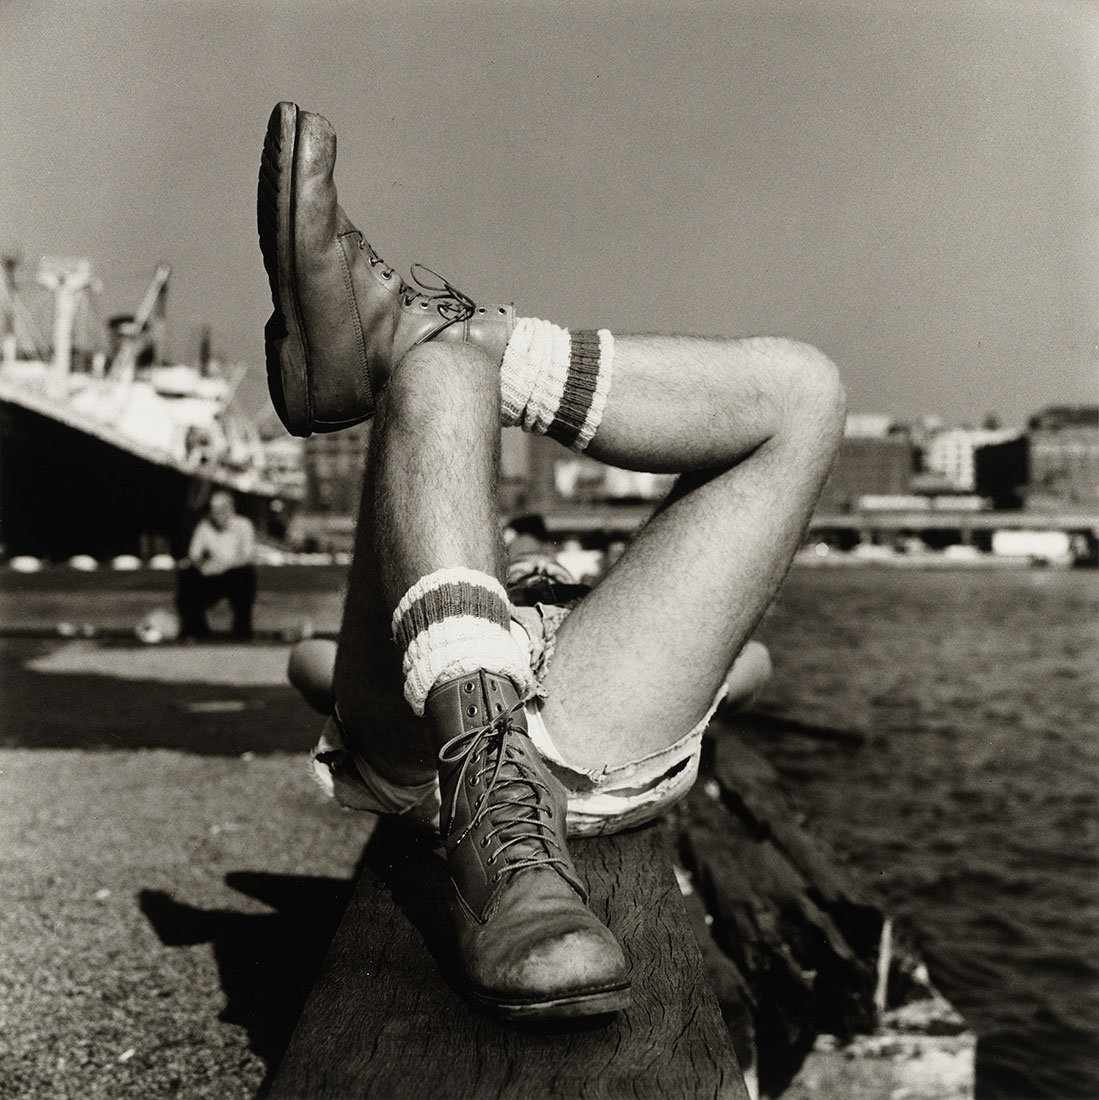 Christopher Street Pier (2)<br />1976<br />Peter Hujar<br />Tirage gélatino-argentique, The Morgan Library & Museum, achat en 2013 grâce au Charina Endowment Fund<br />© Peter Hujar Archive, LLC, courtesy Pace/MacGill Gallery, New York and Fraenkel Gallery, San Francisco